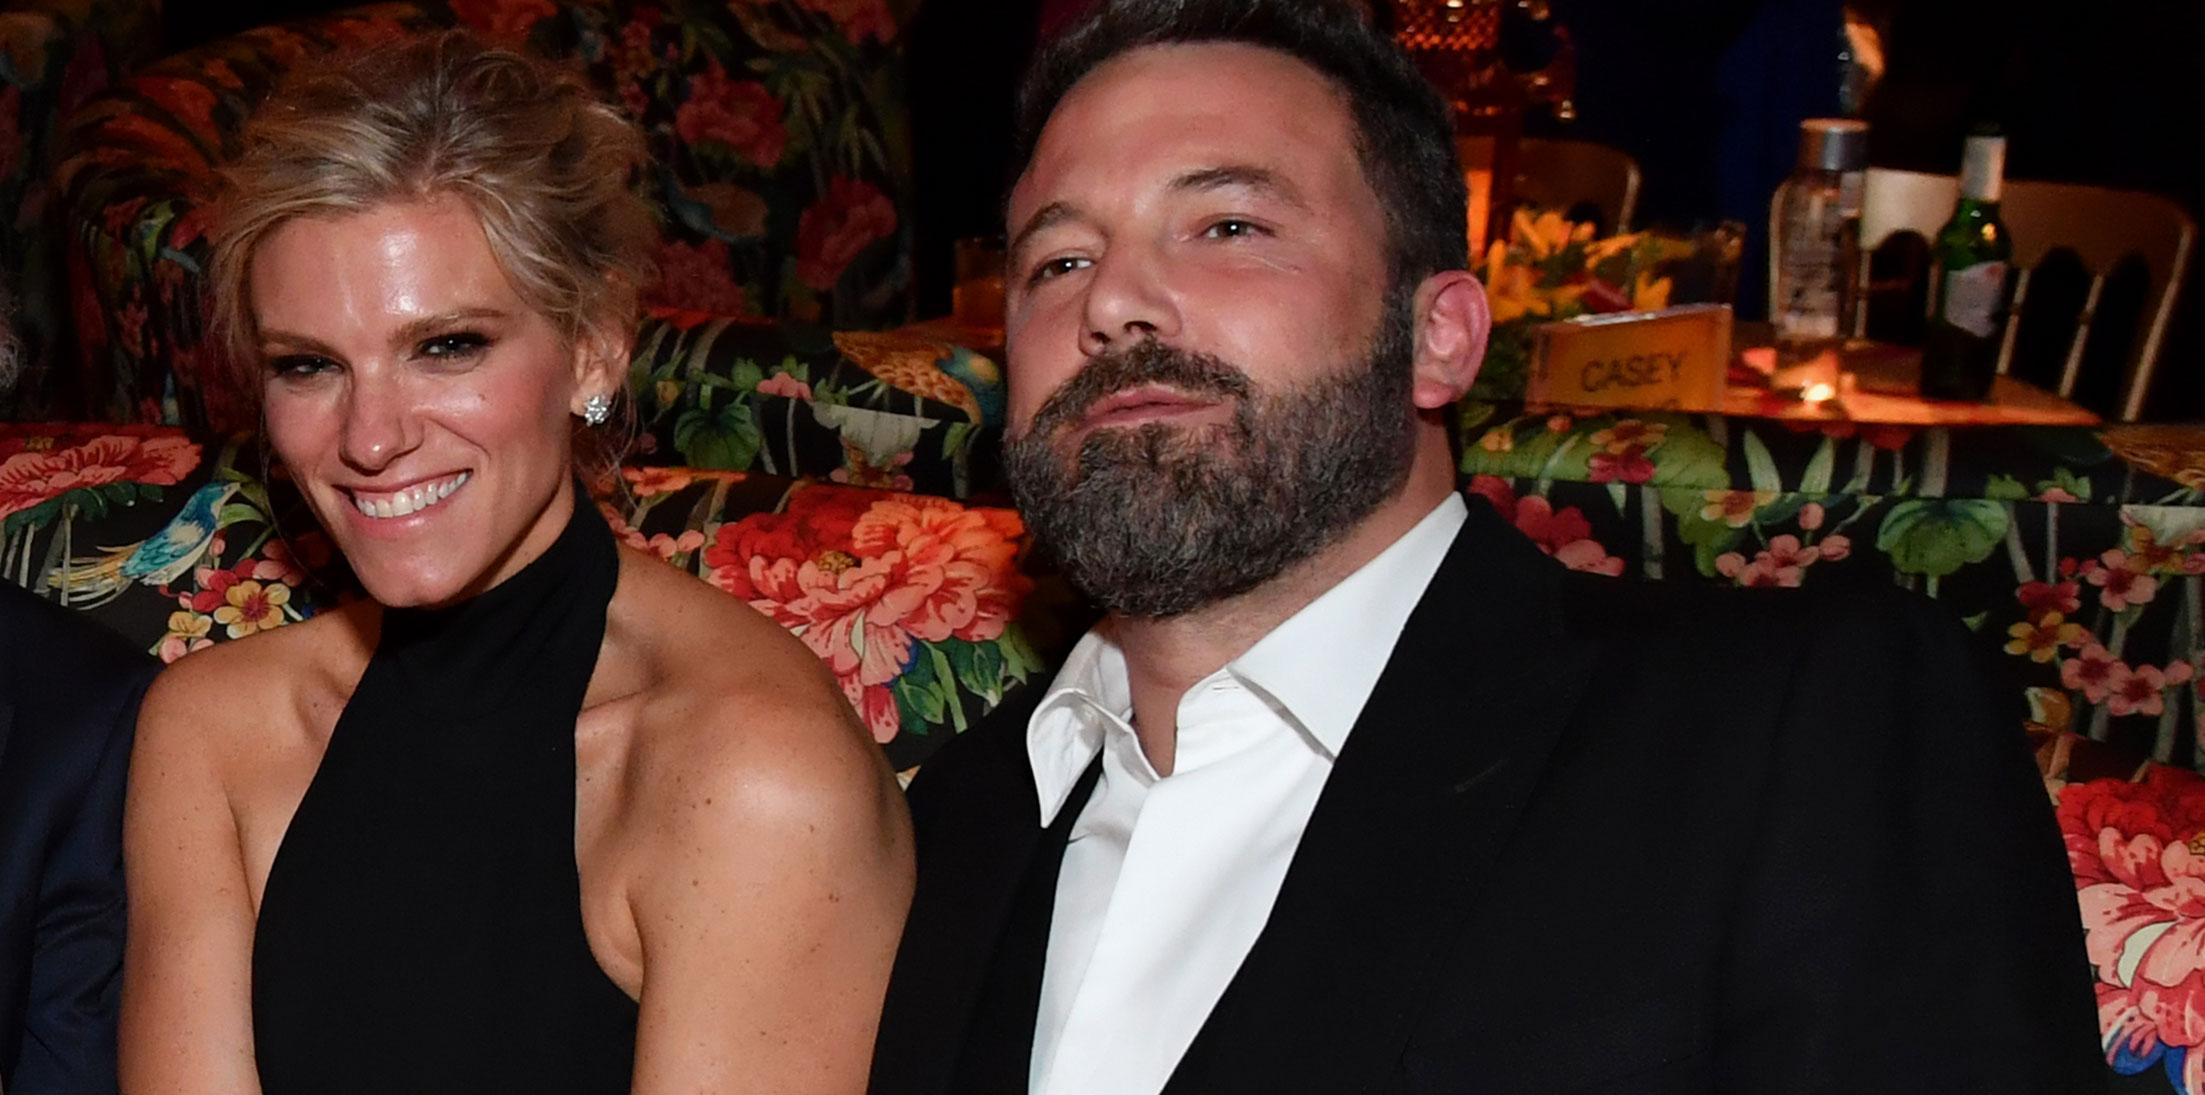 Lindsay shookus ben affleck emmys couple wide